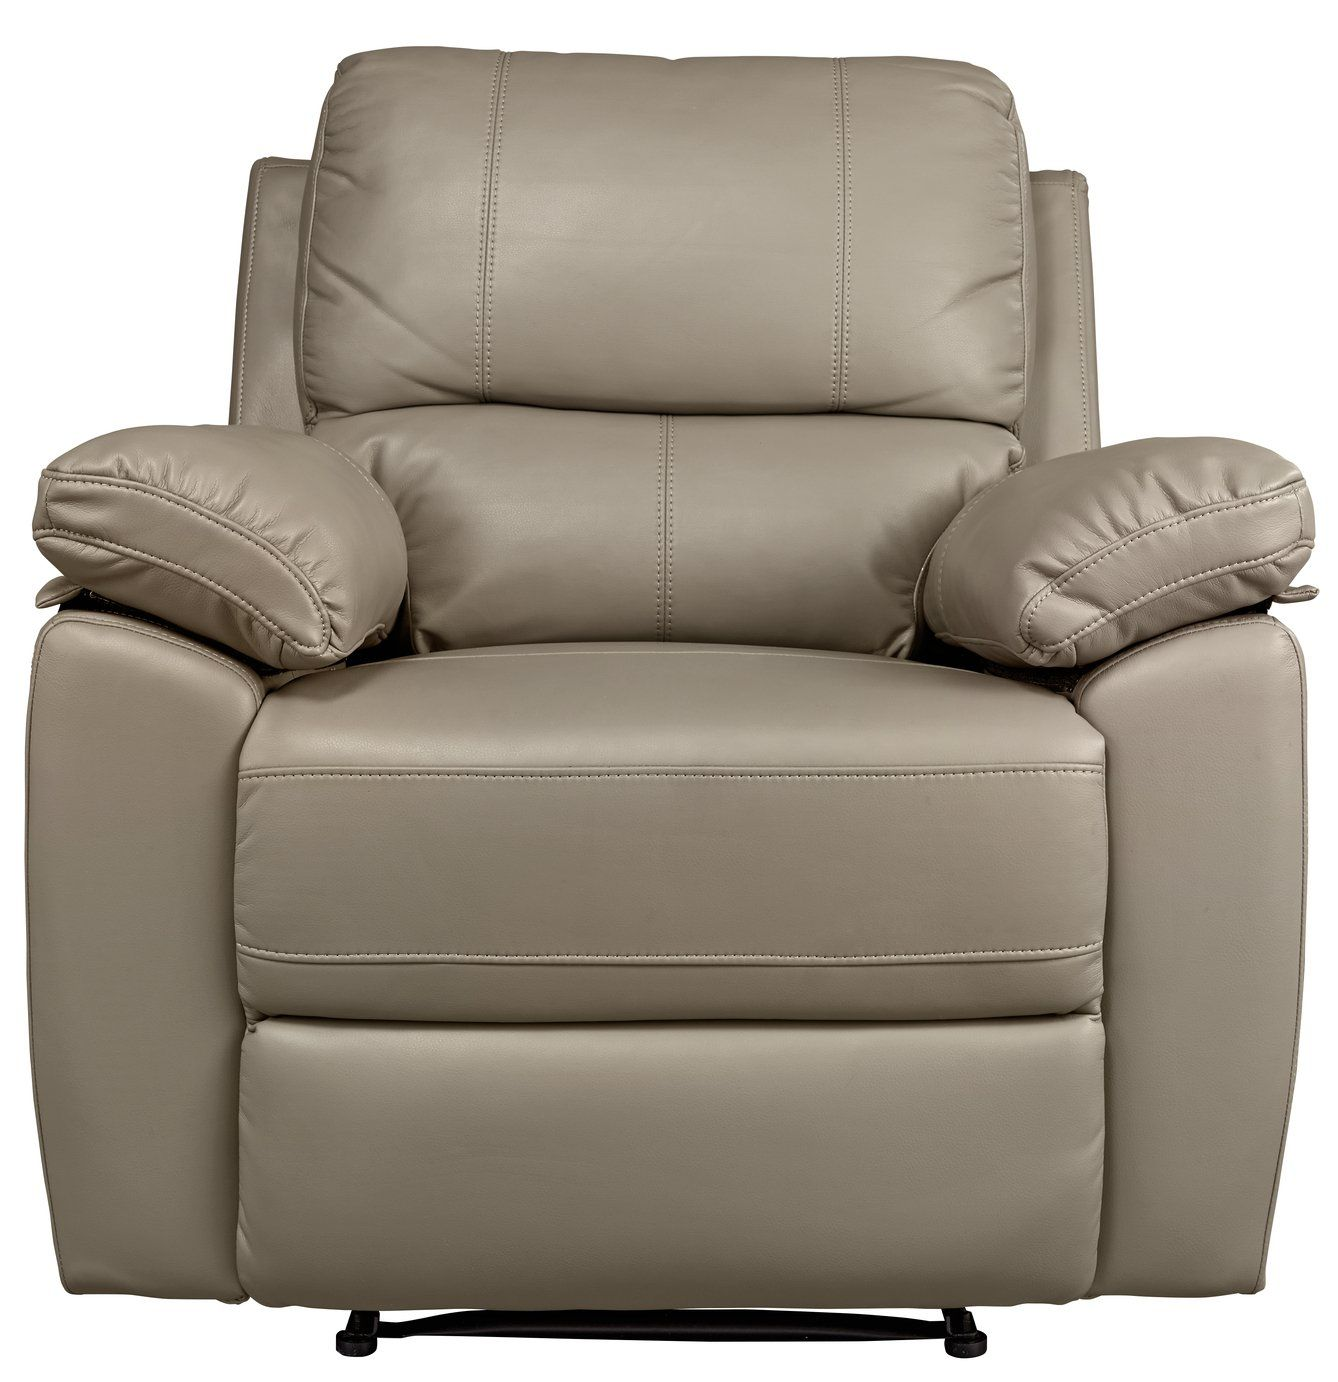 Argos Home Toby Faux Leather Manual Recliner Chair Grey 249 99